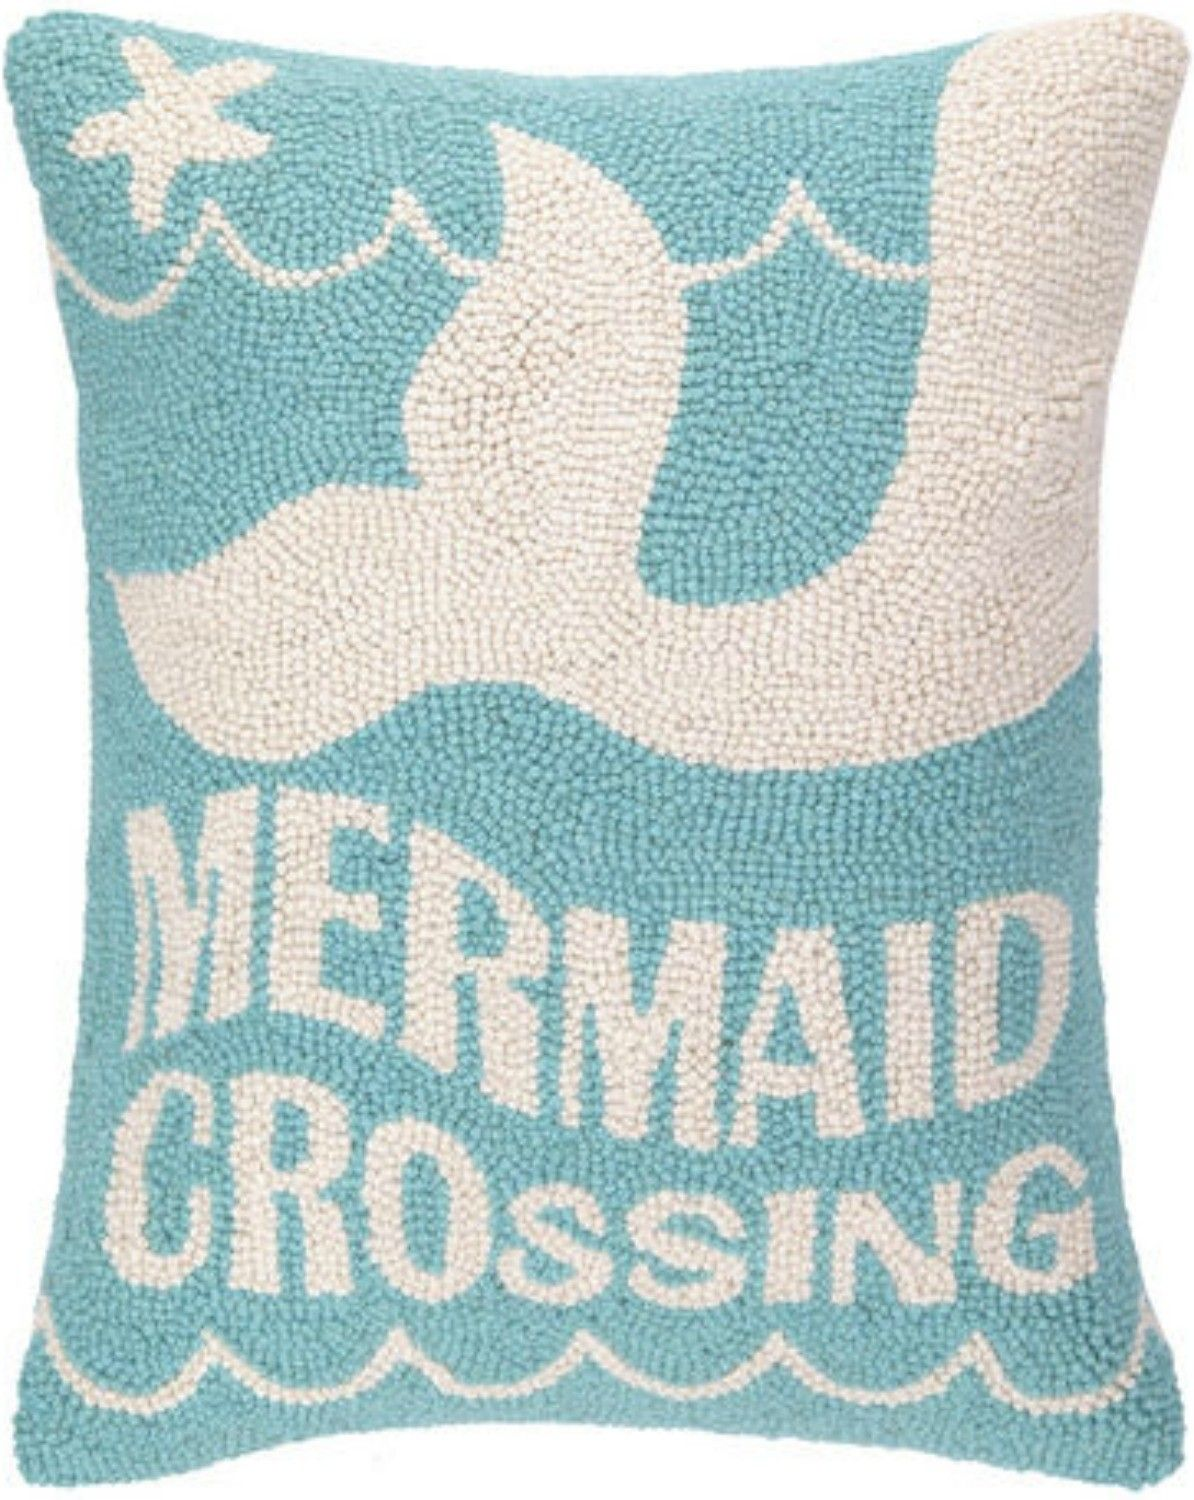 beachpillows home coastalpillows pillow cape cod pin pillows beach and coastal living